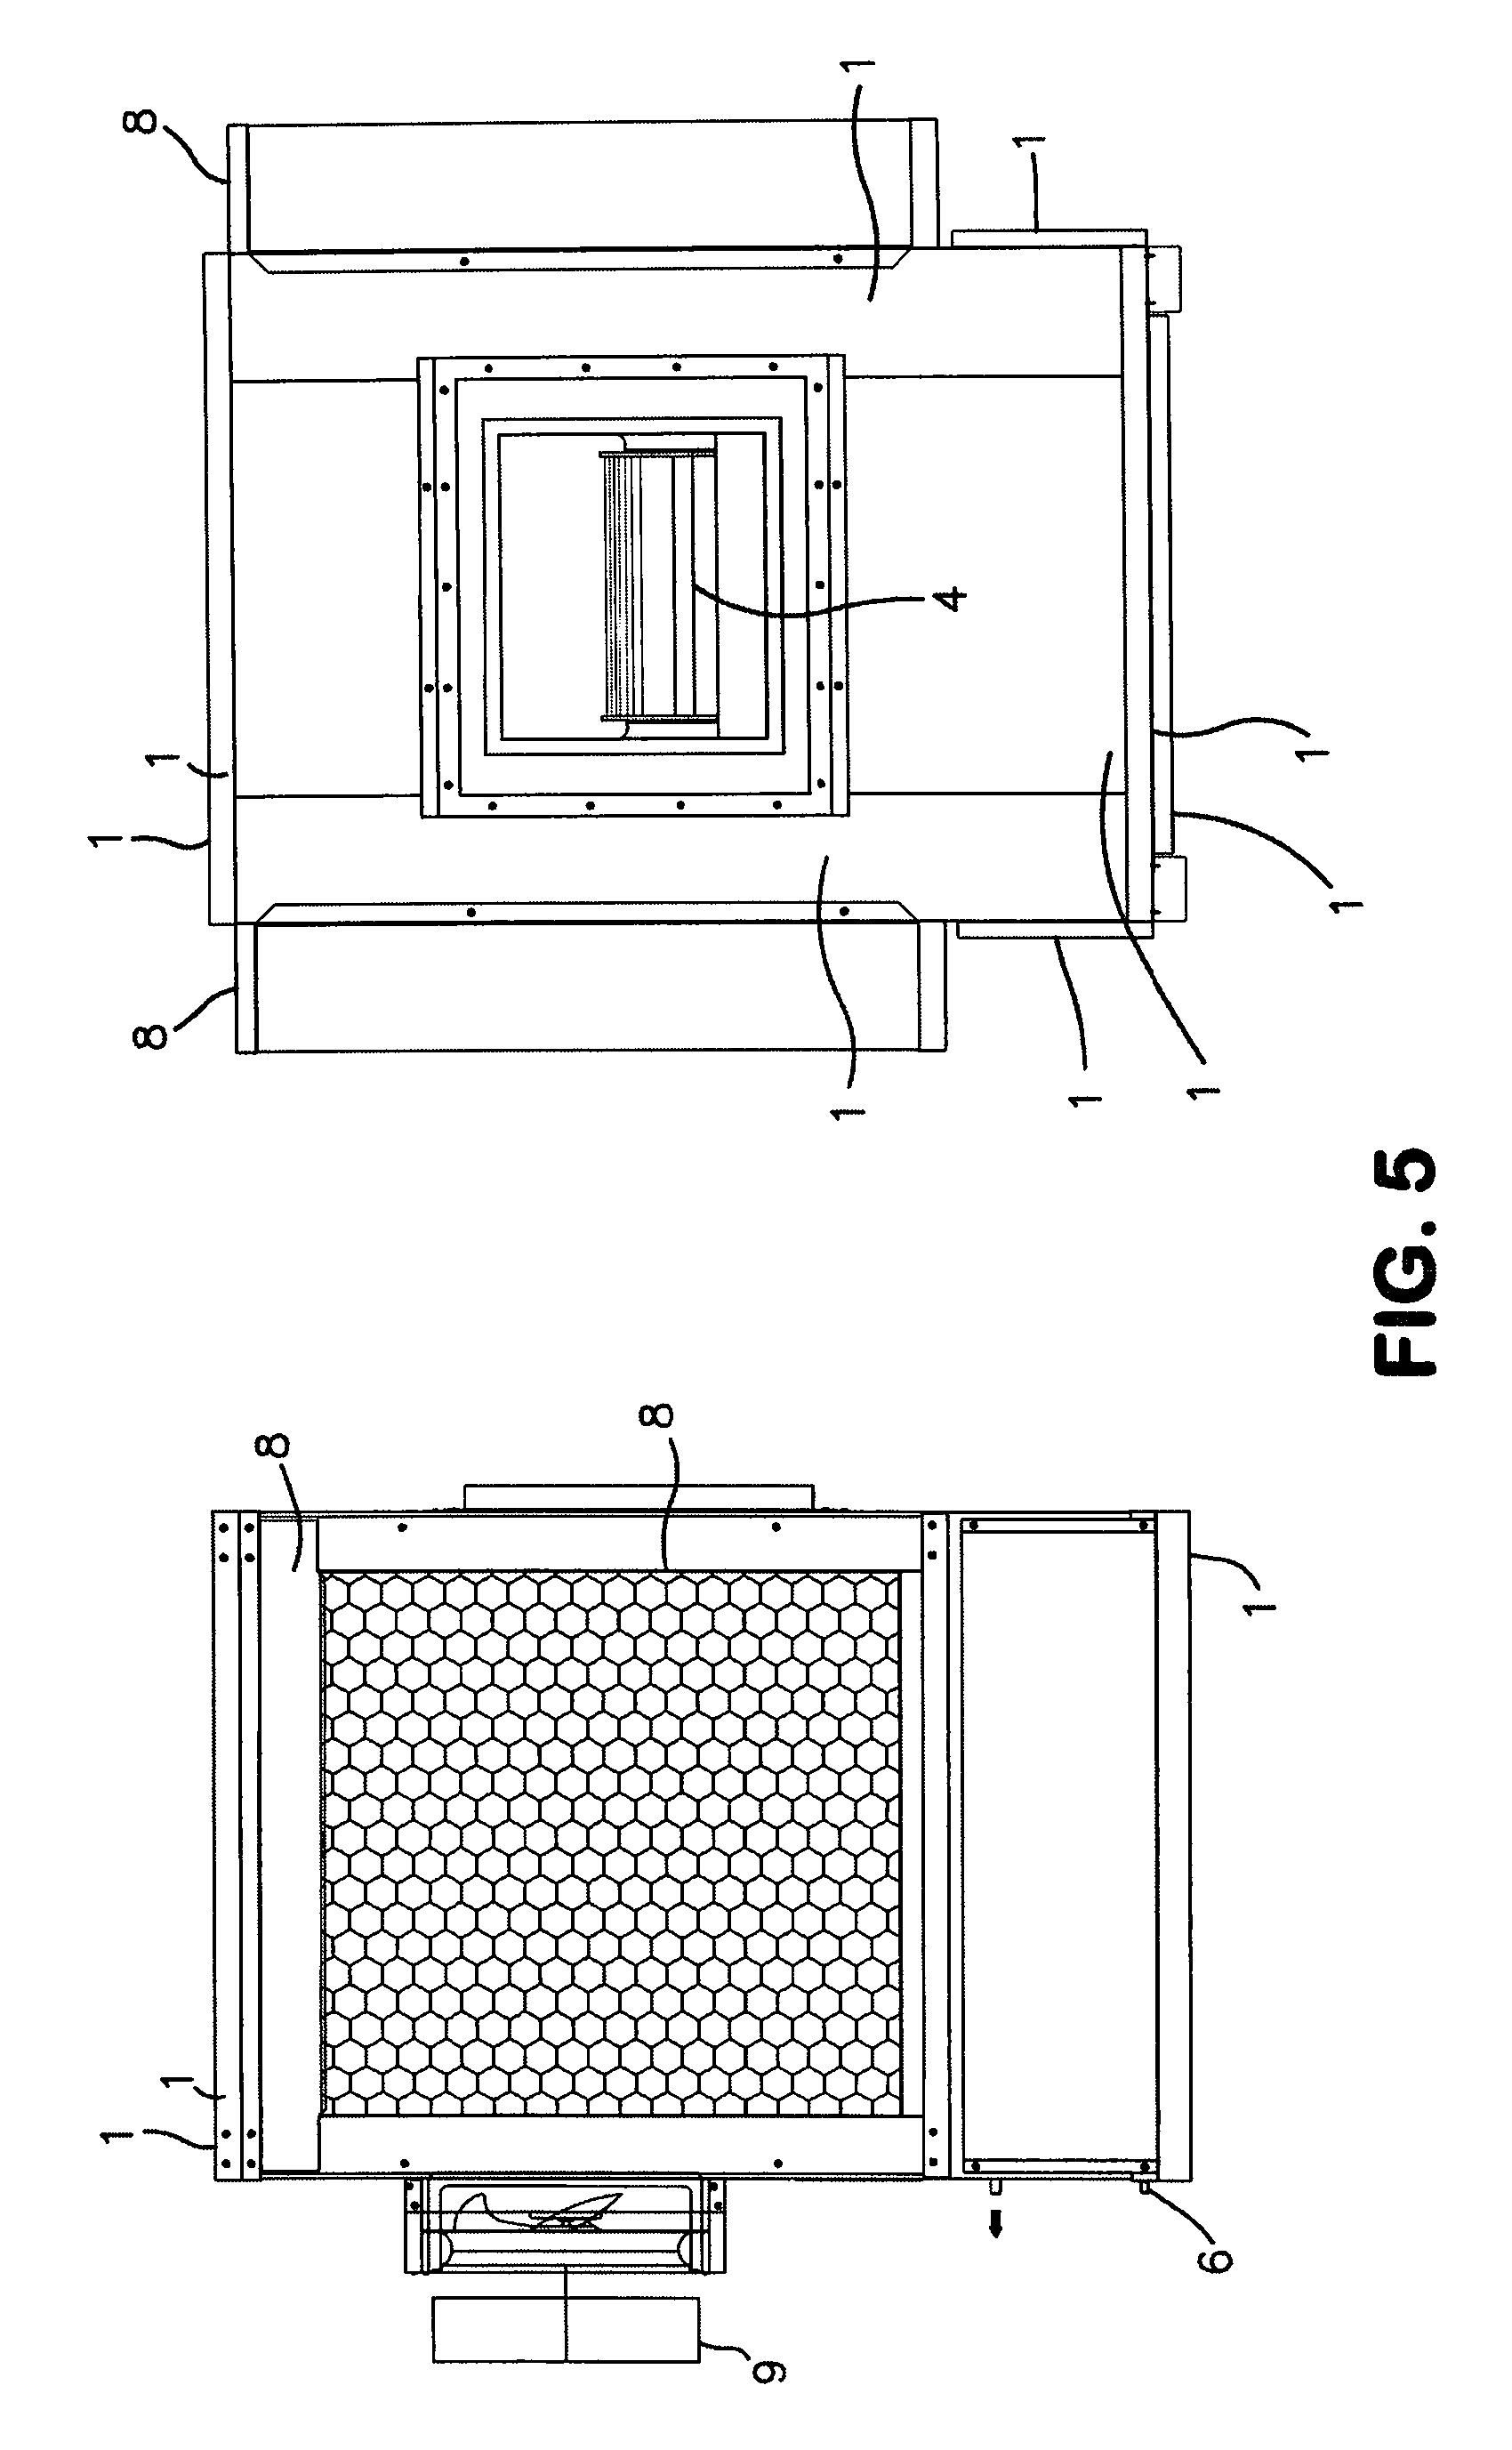 Evaporative Cooling Multi Sycle : Patent us  evaporative air cooler with multi